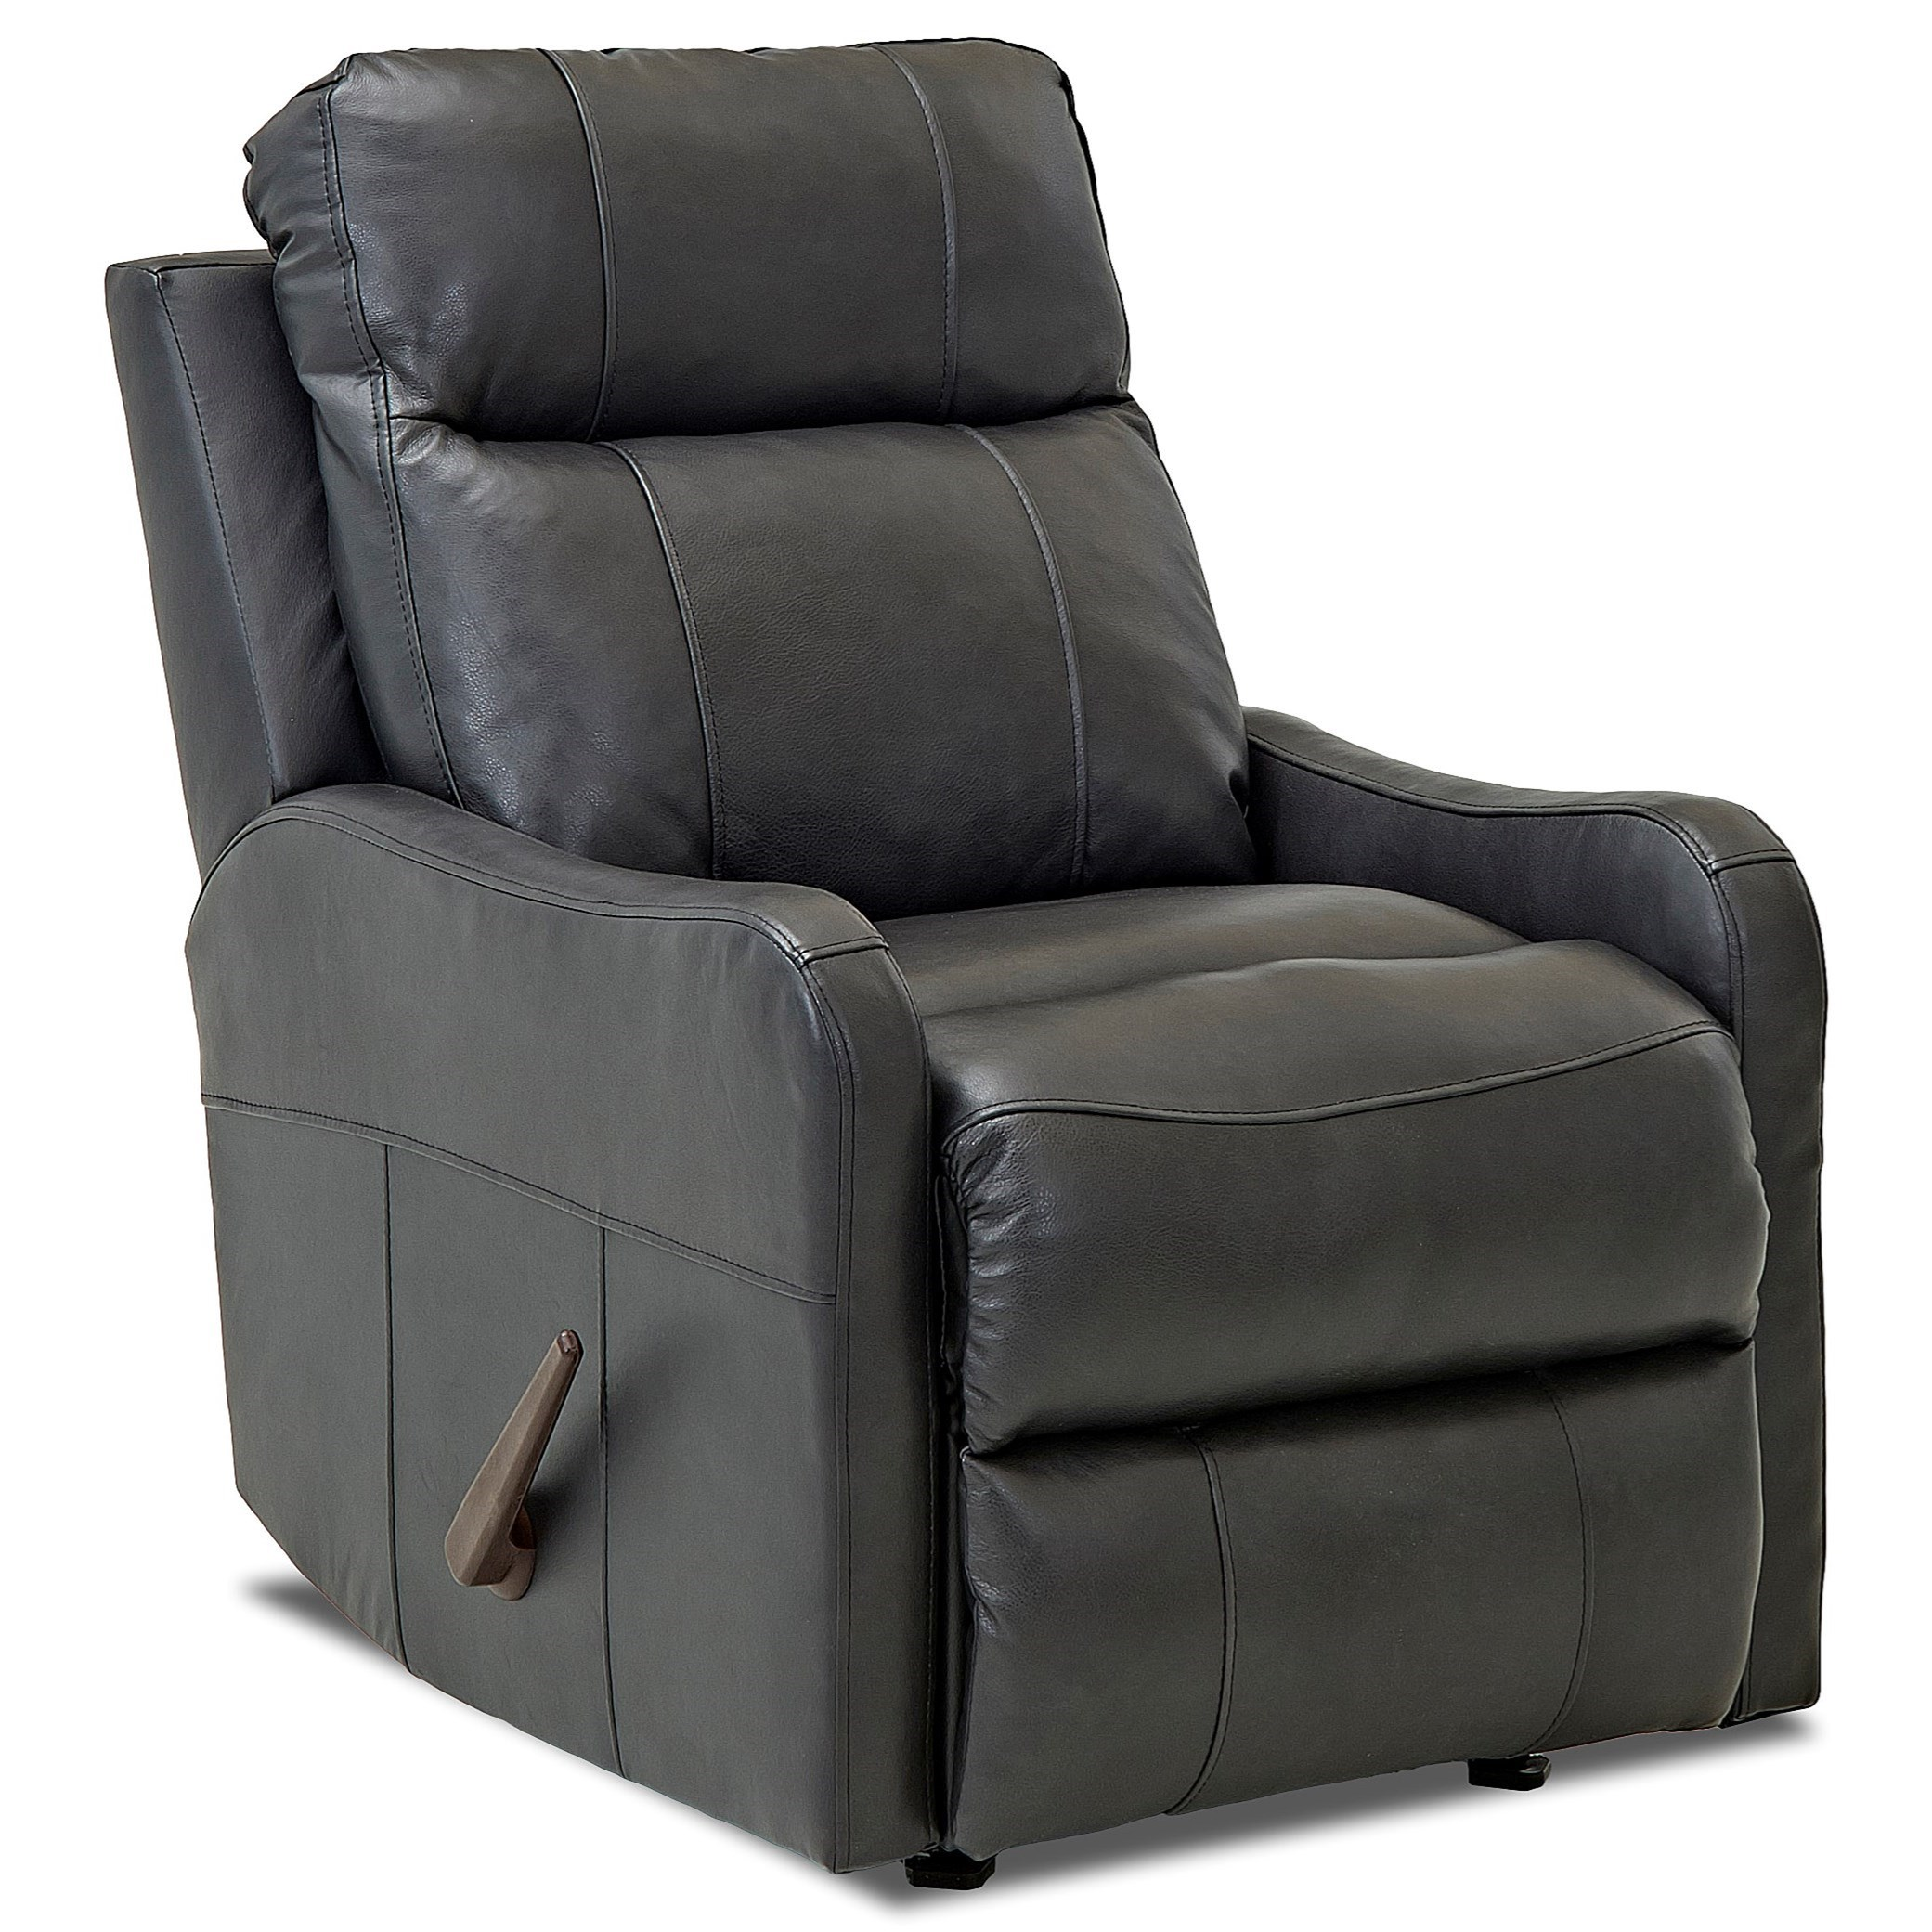 Klaussner Tacoma Casual Power Reclining Chair Value City